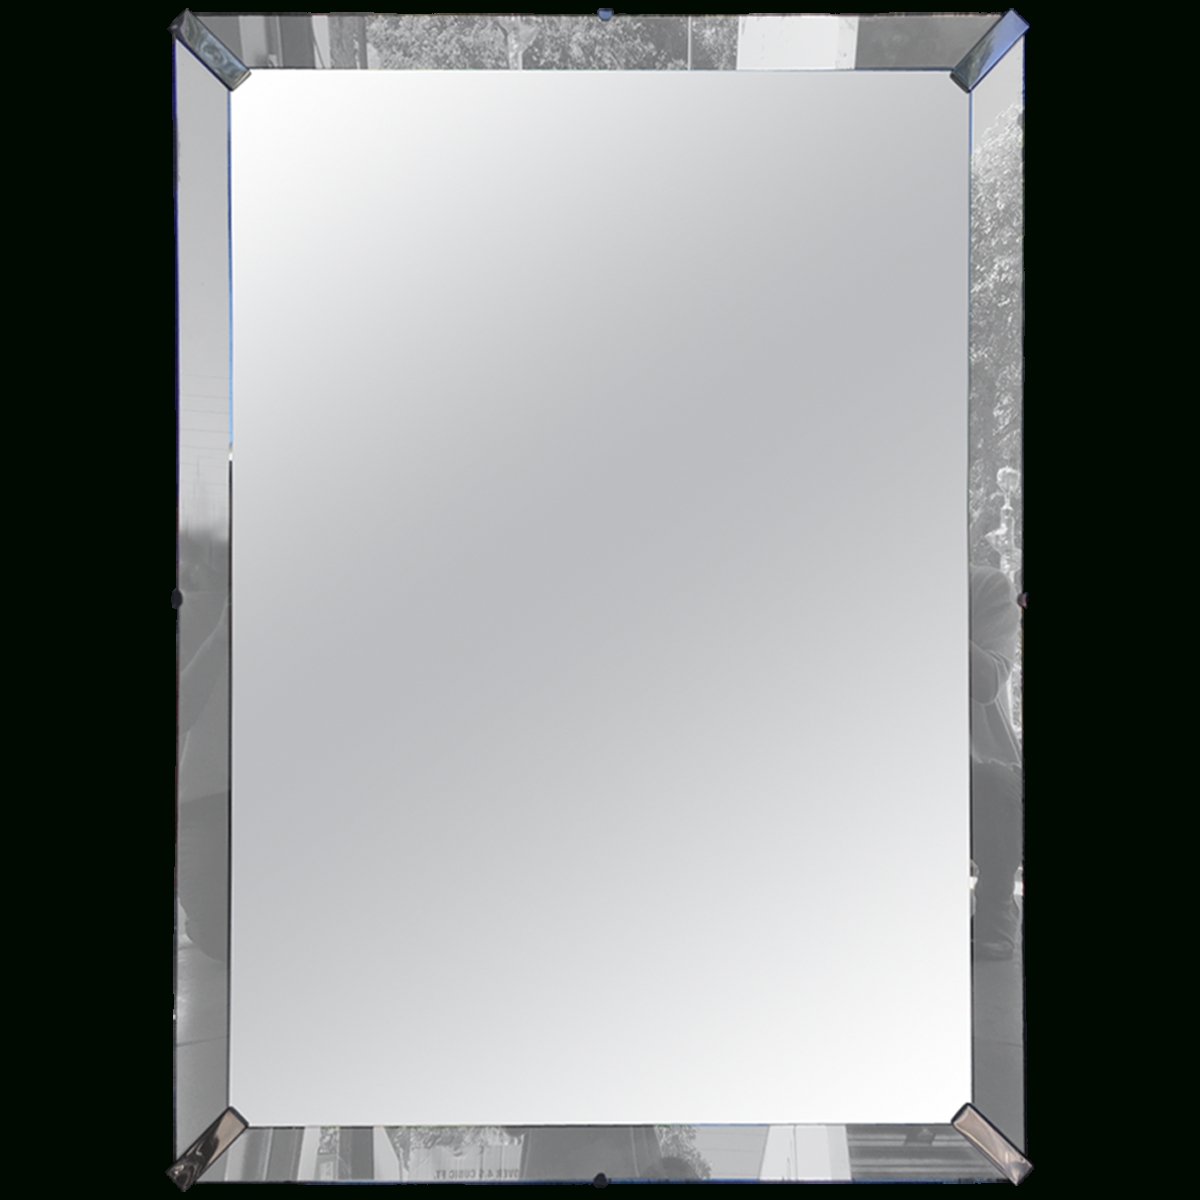 Viyet – Designer Furniture – Accessories – Vintage Art Deco Style Intended For Art Deco Wall Mirror (Image 18 of 20)